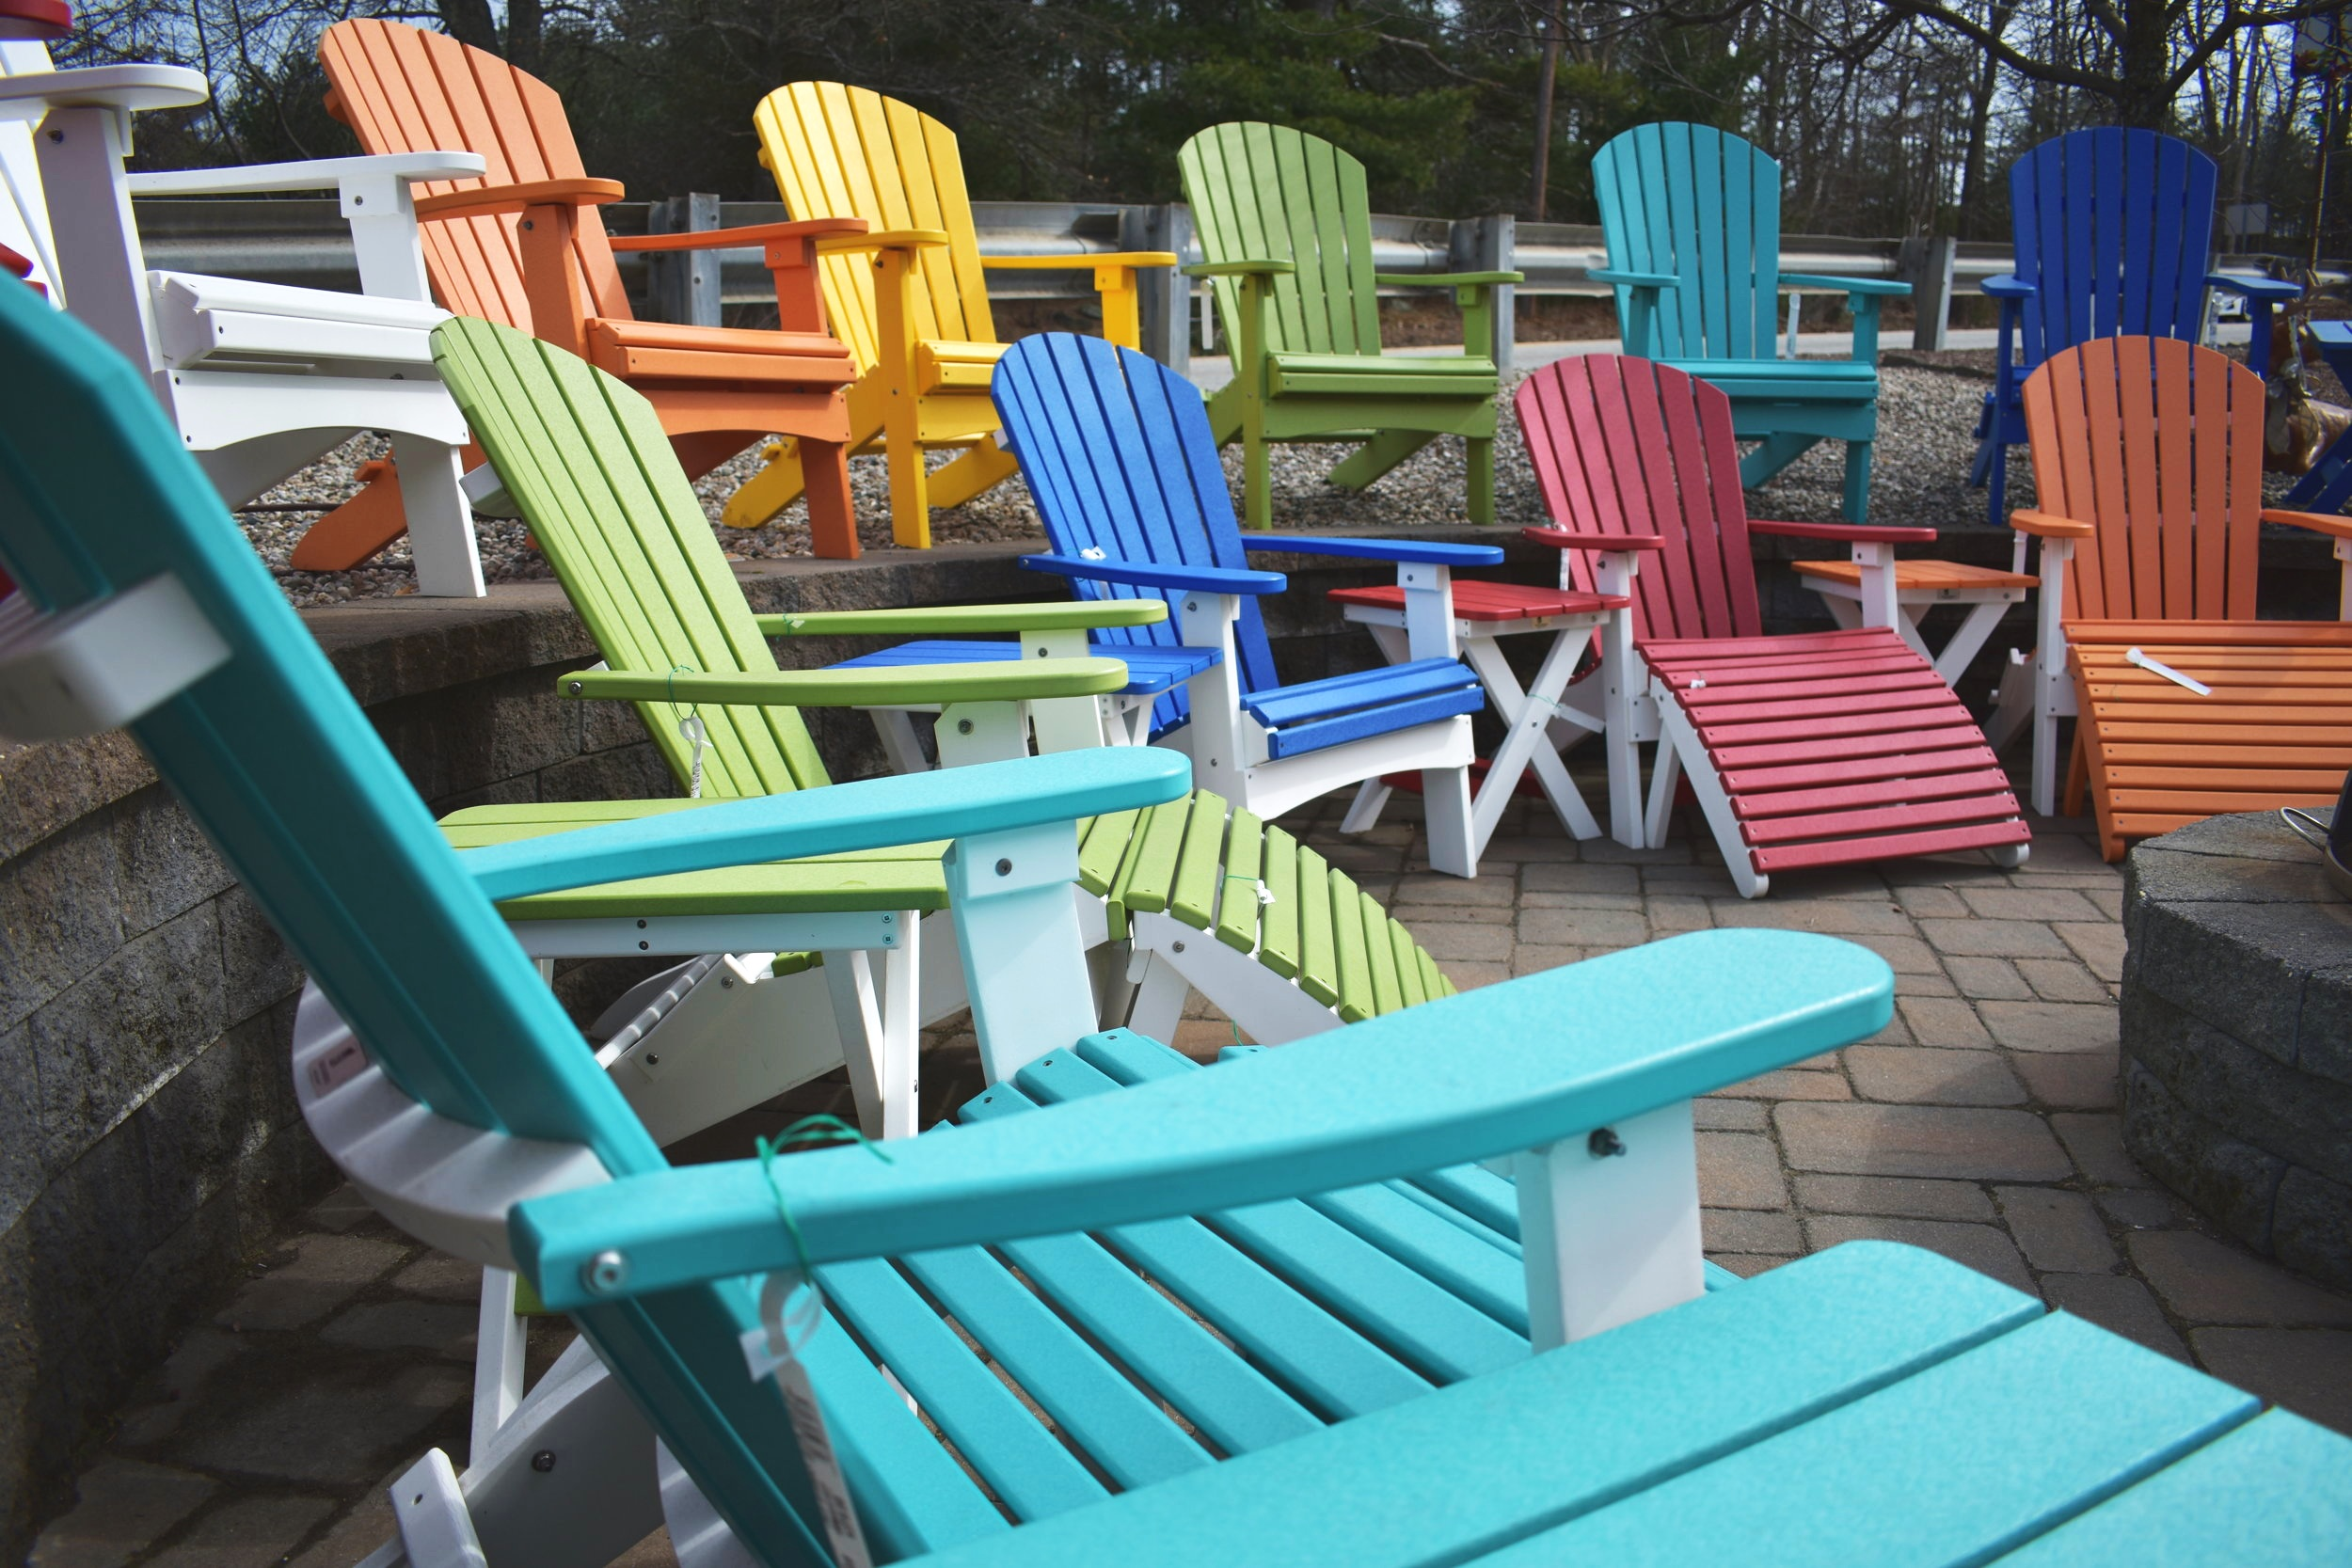 Durable patio furniture from Berlin Gardens in all colors of the rainbow — made in the U.S.A. with a great warranty! Shop the collection on our website!